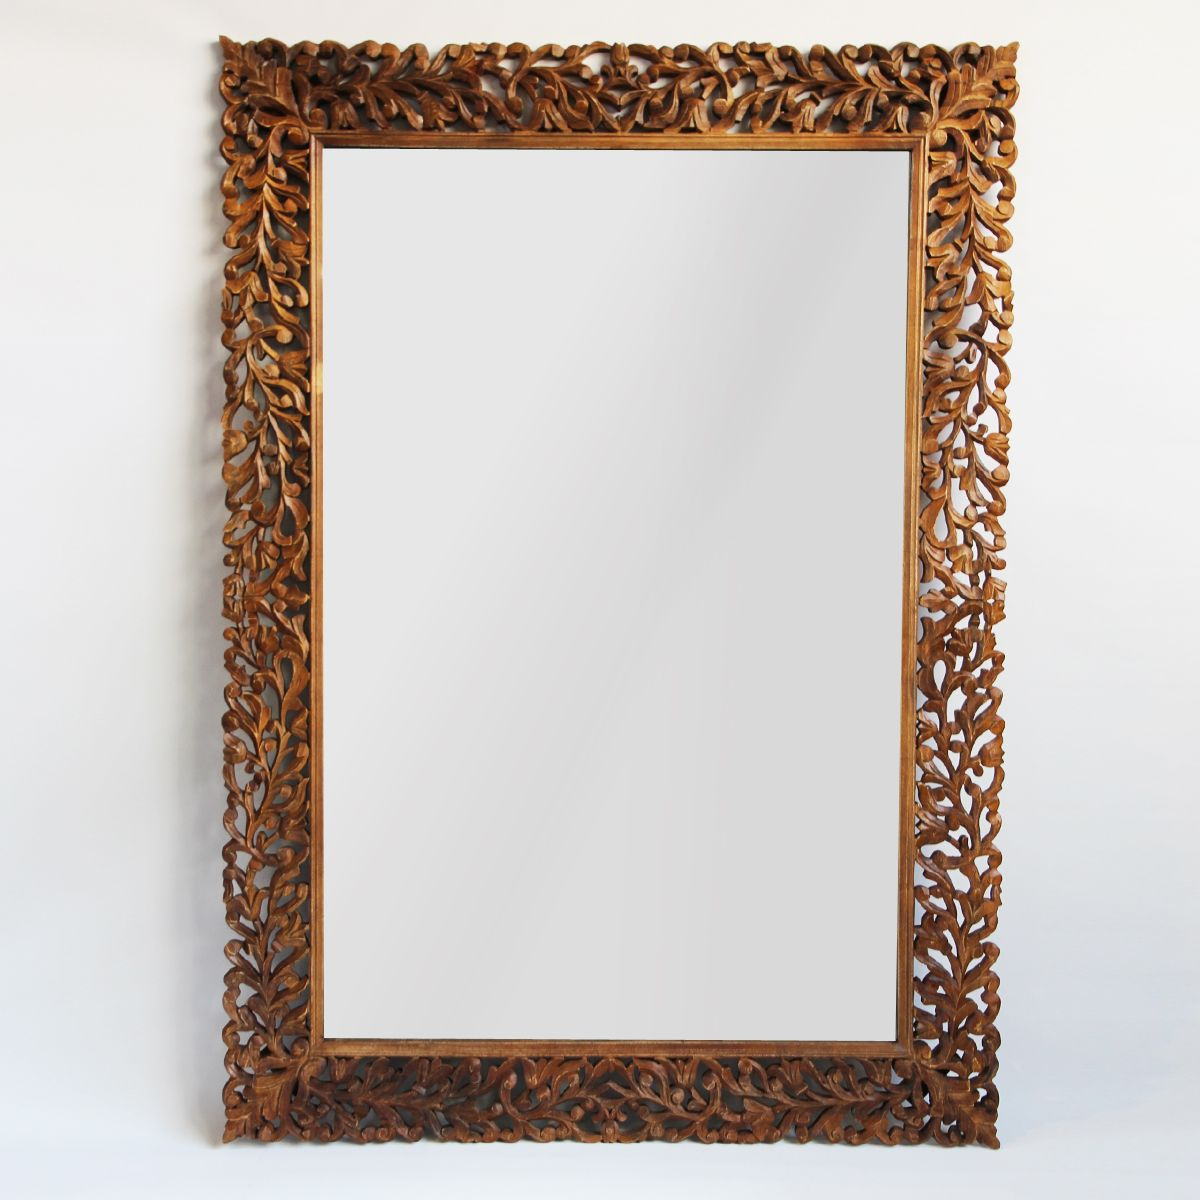 Hand Carved Teak Wood Mirror Frame With Organic Leaf Design Can Be Displayed Vertical Or